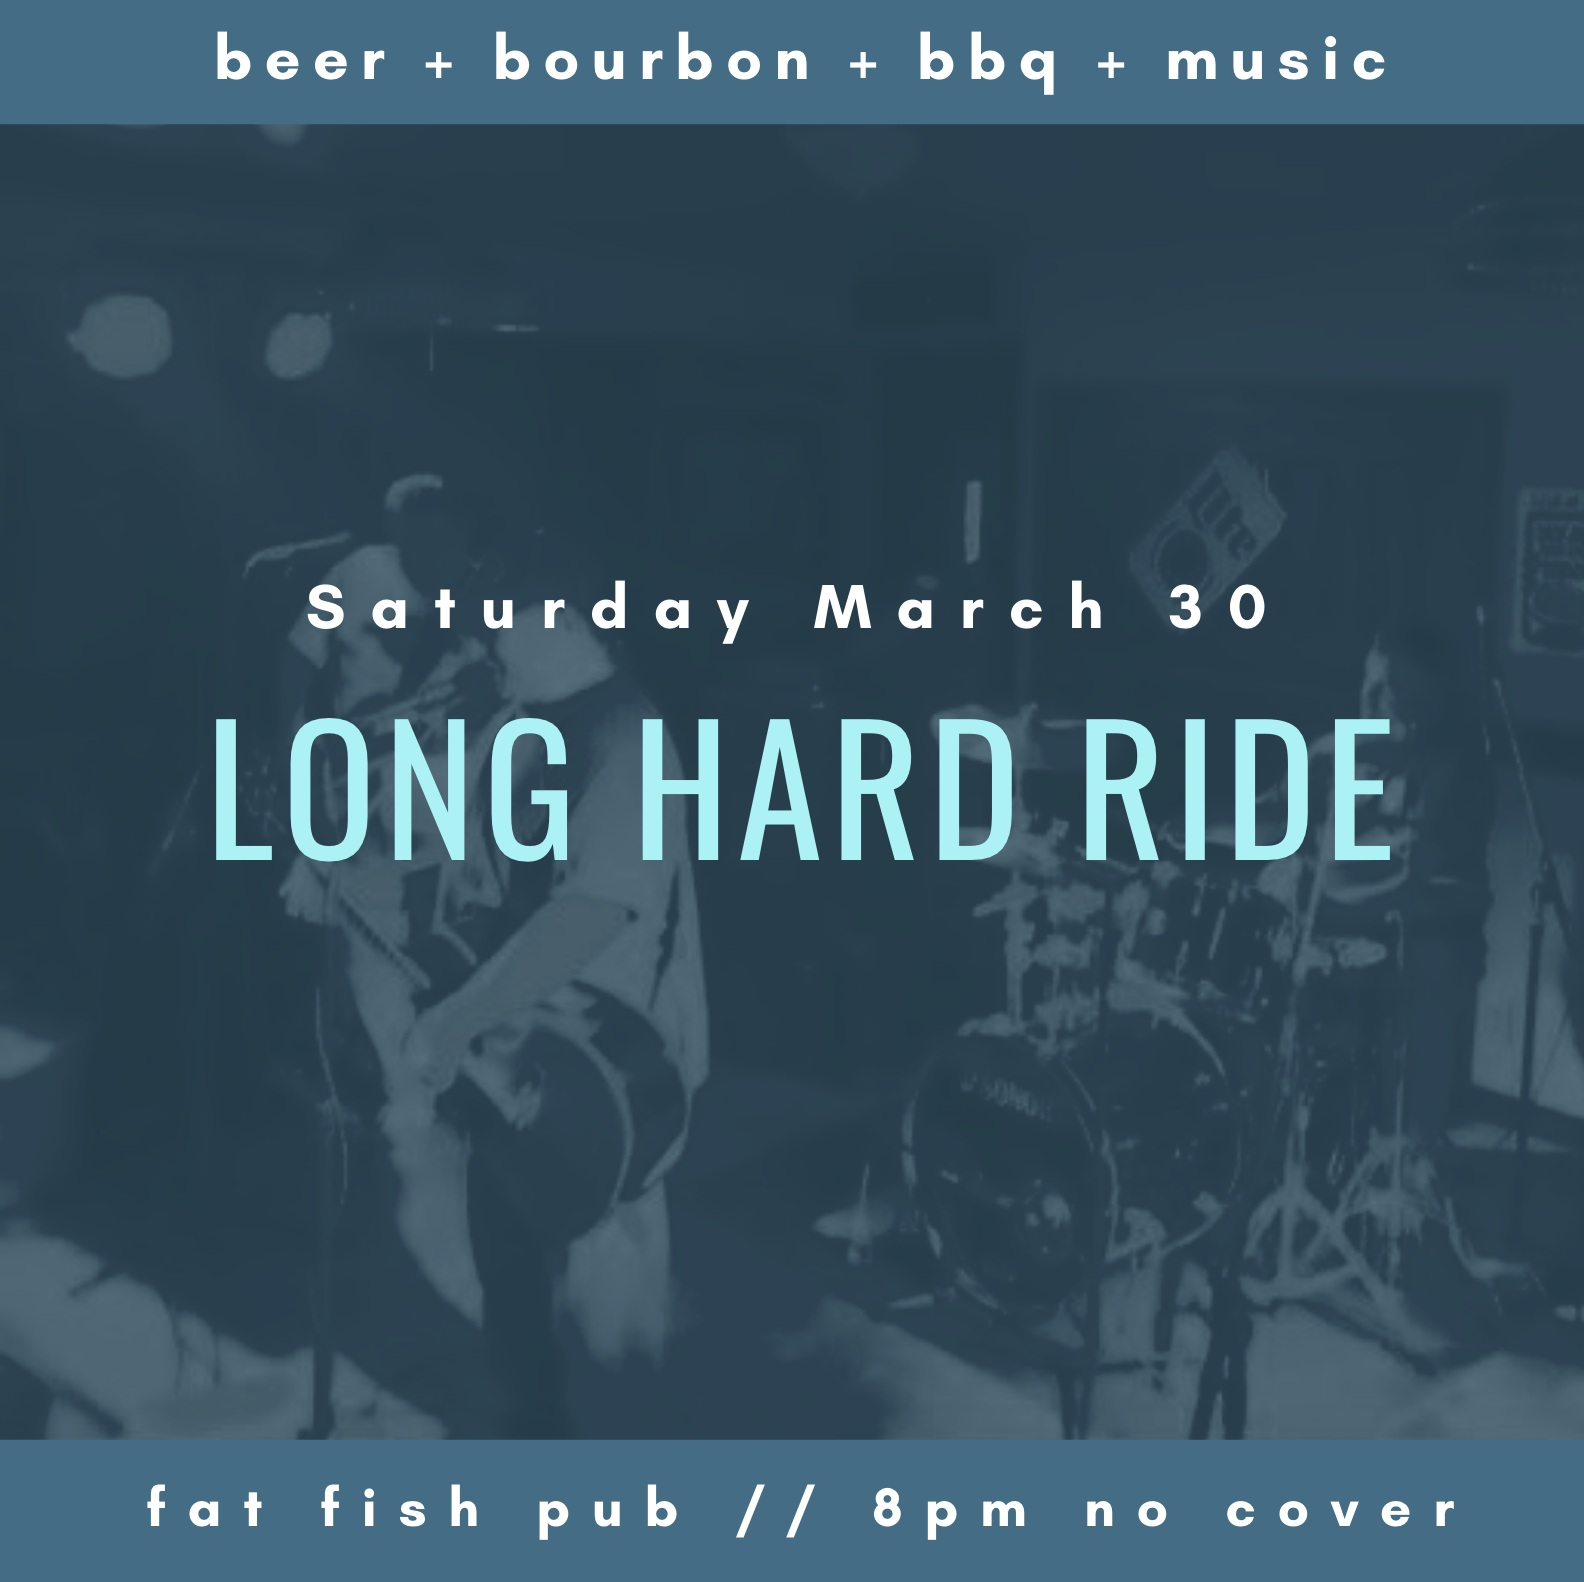 long+hard+ride+promo.jpg